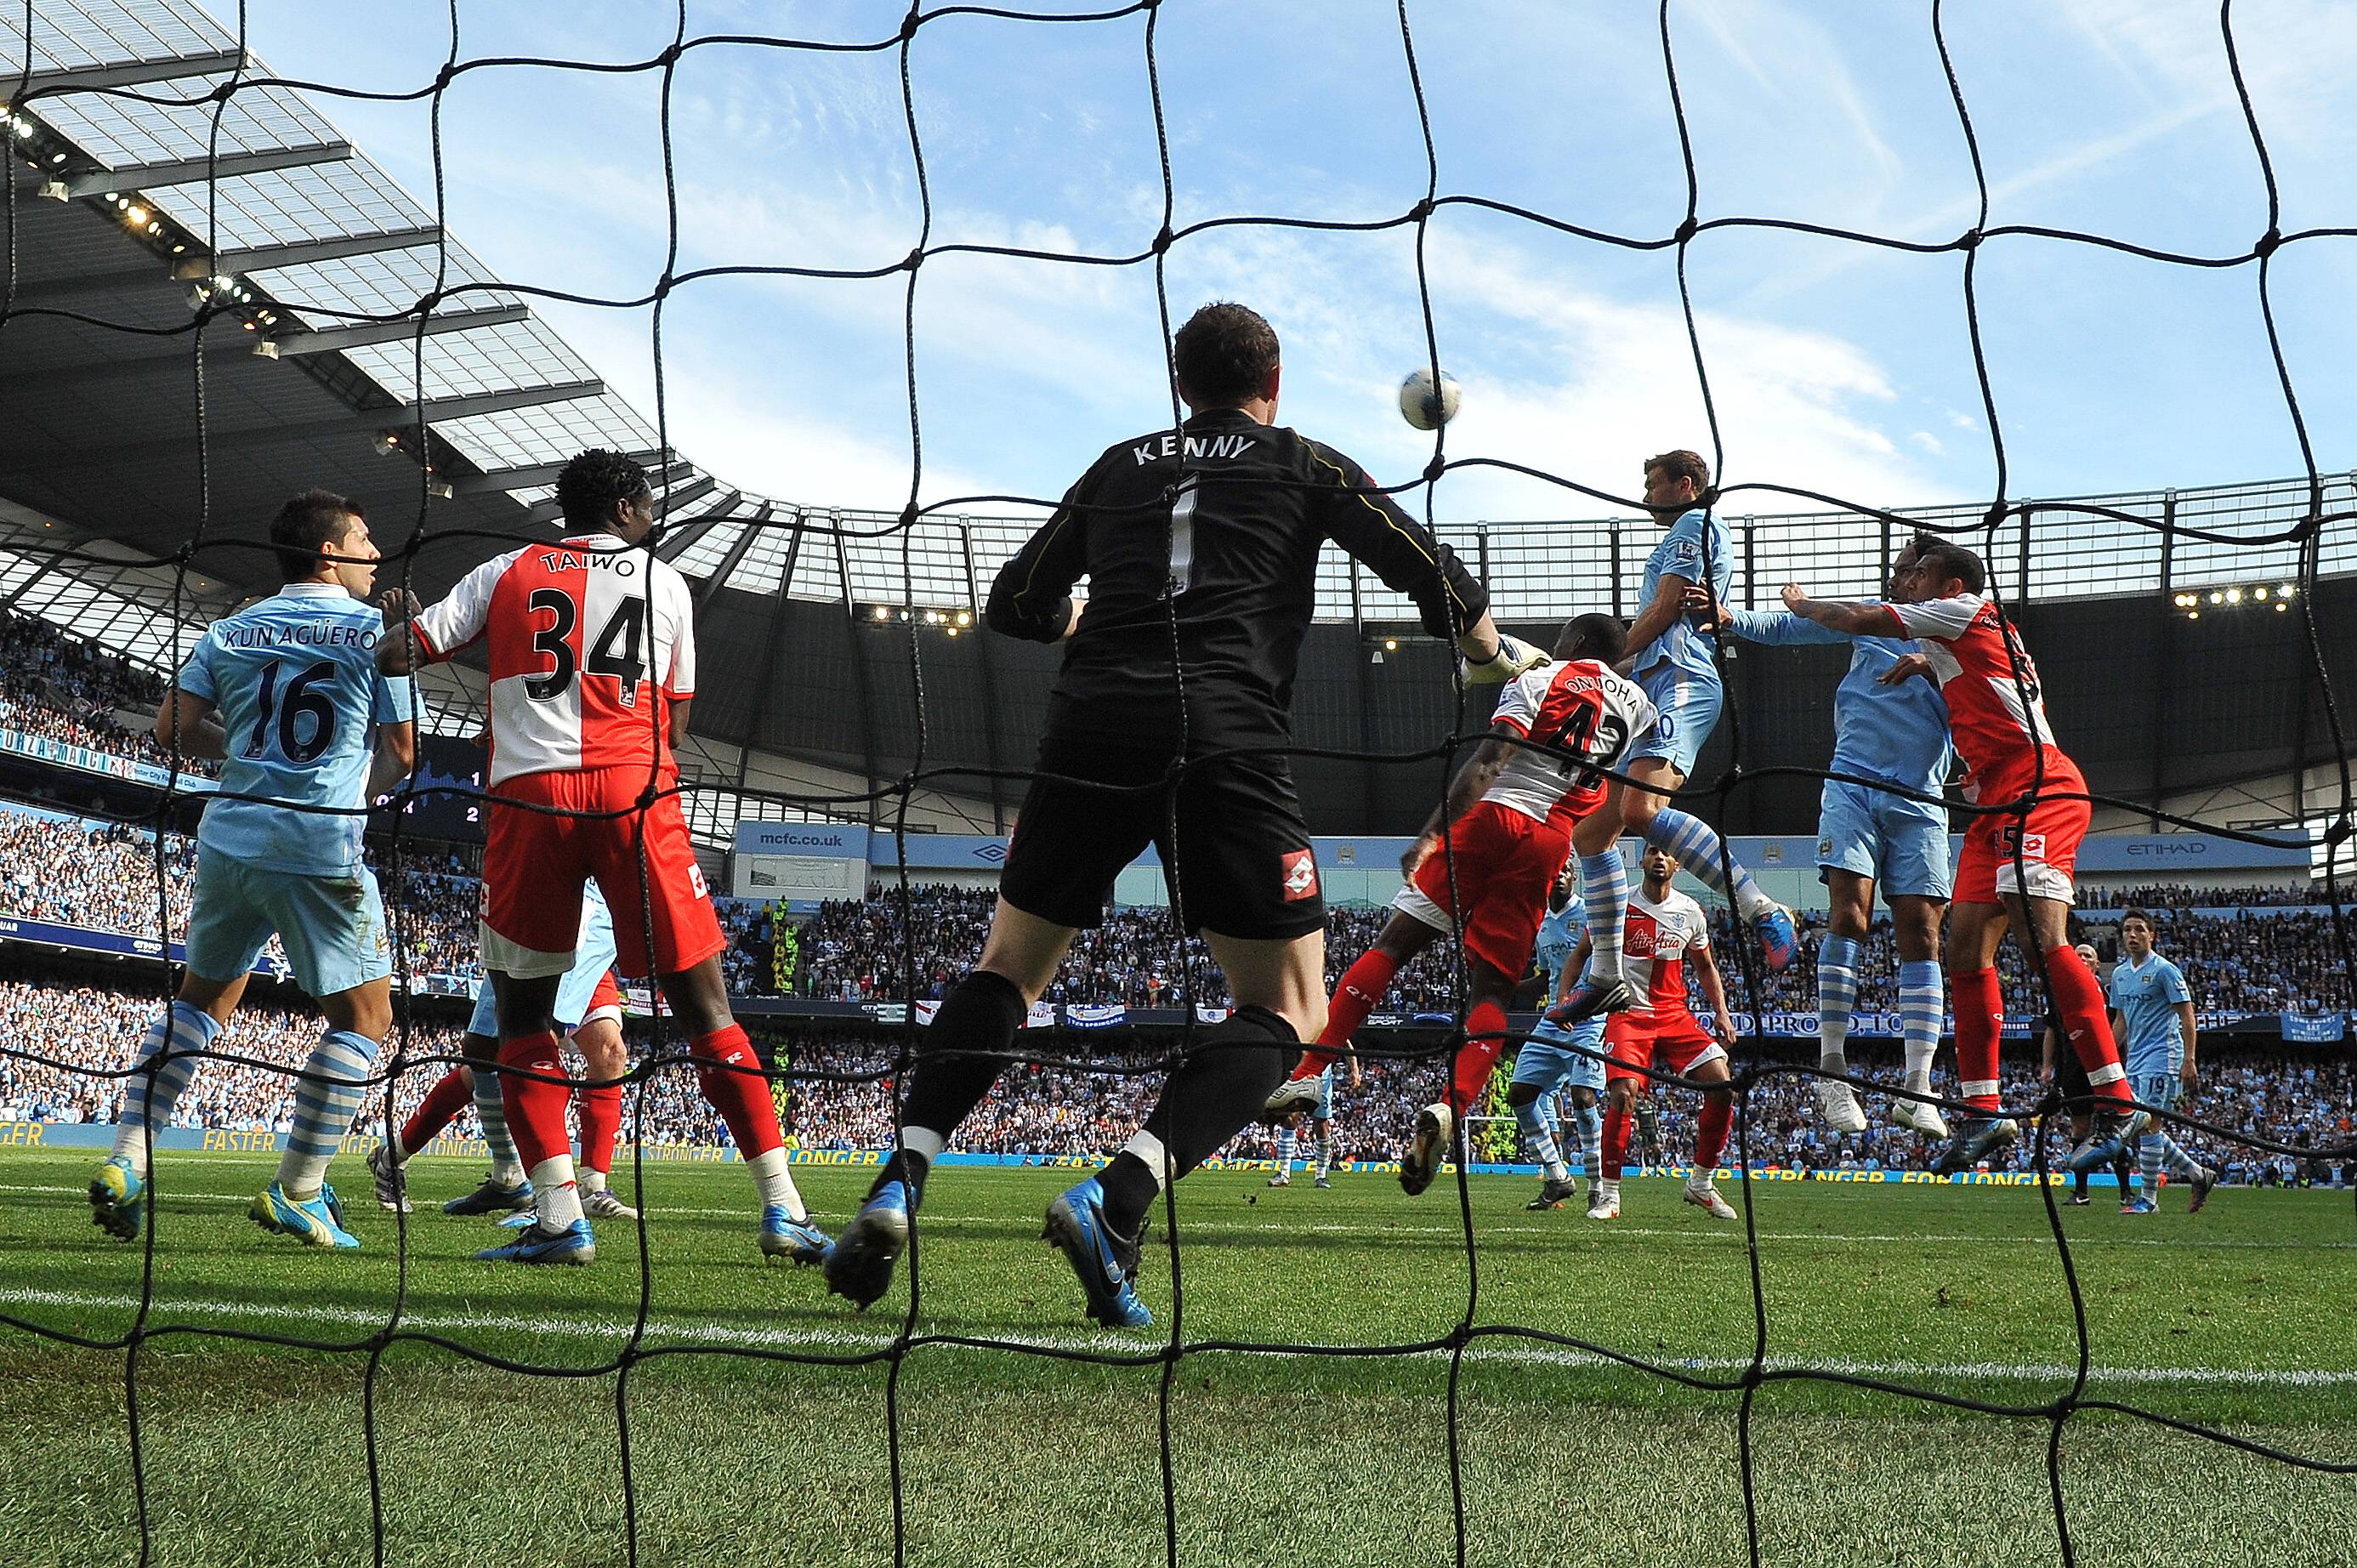 Manchester City's 2012 Premier League title: Epic finish re-told